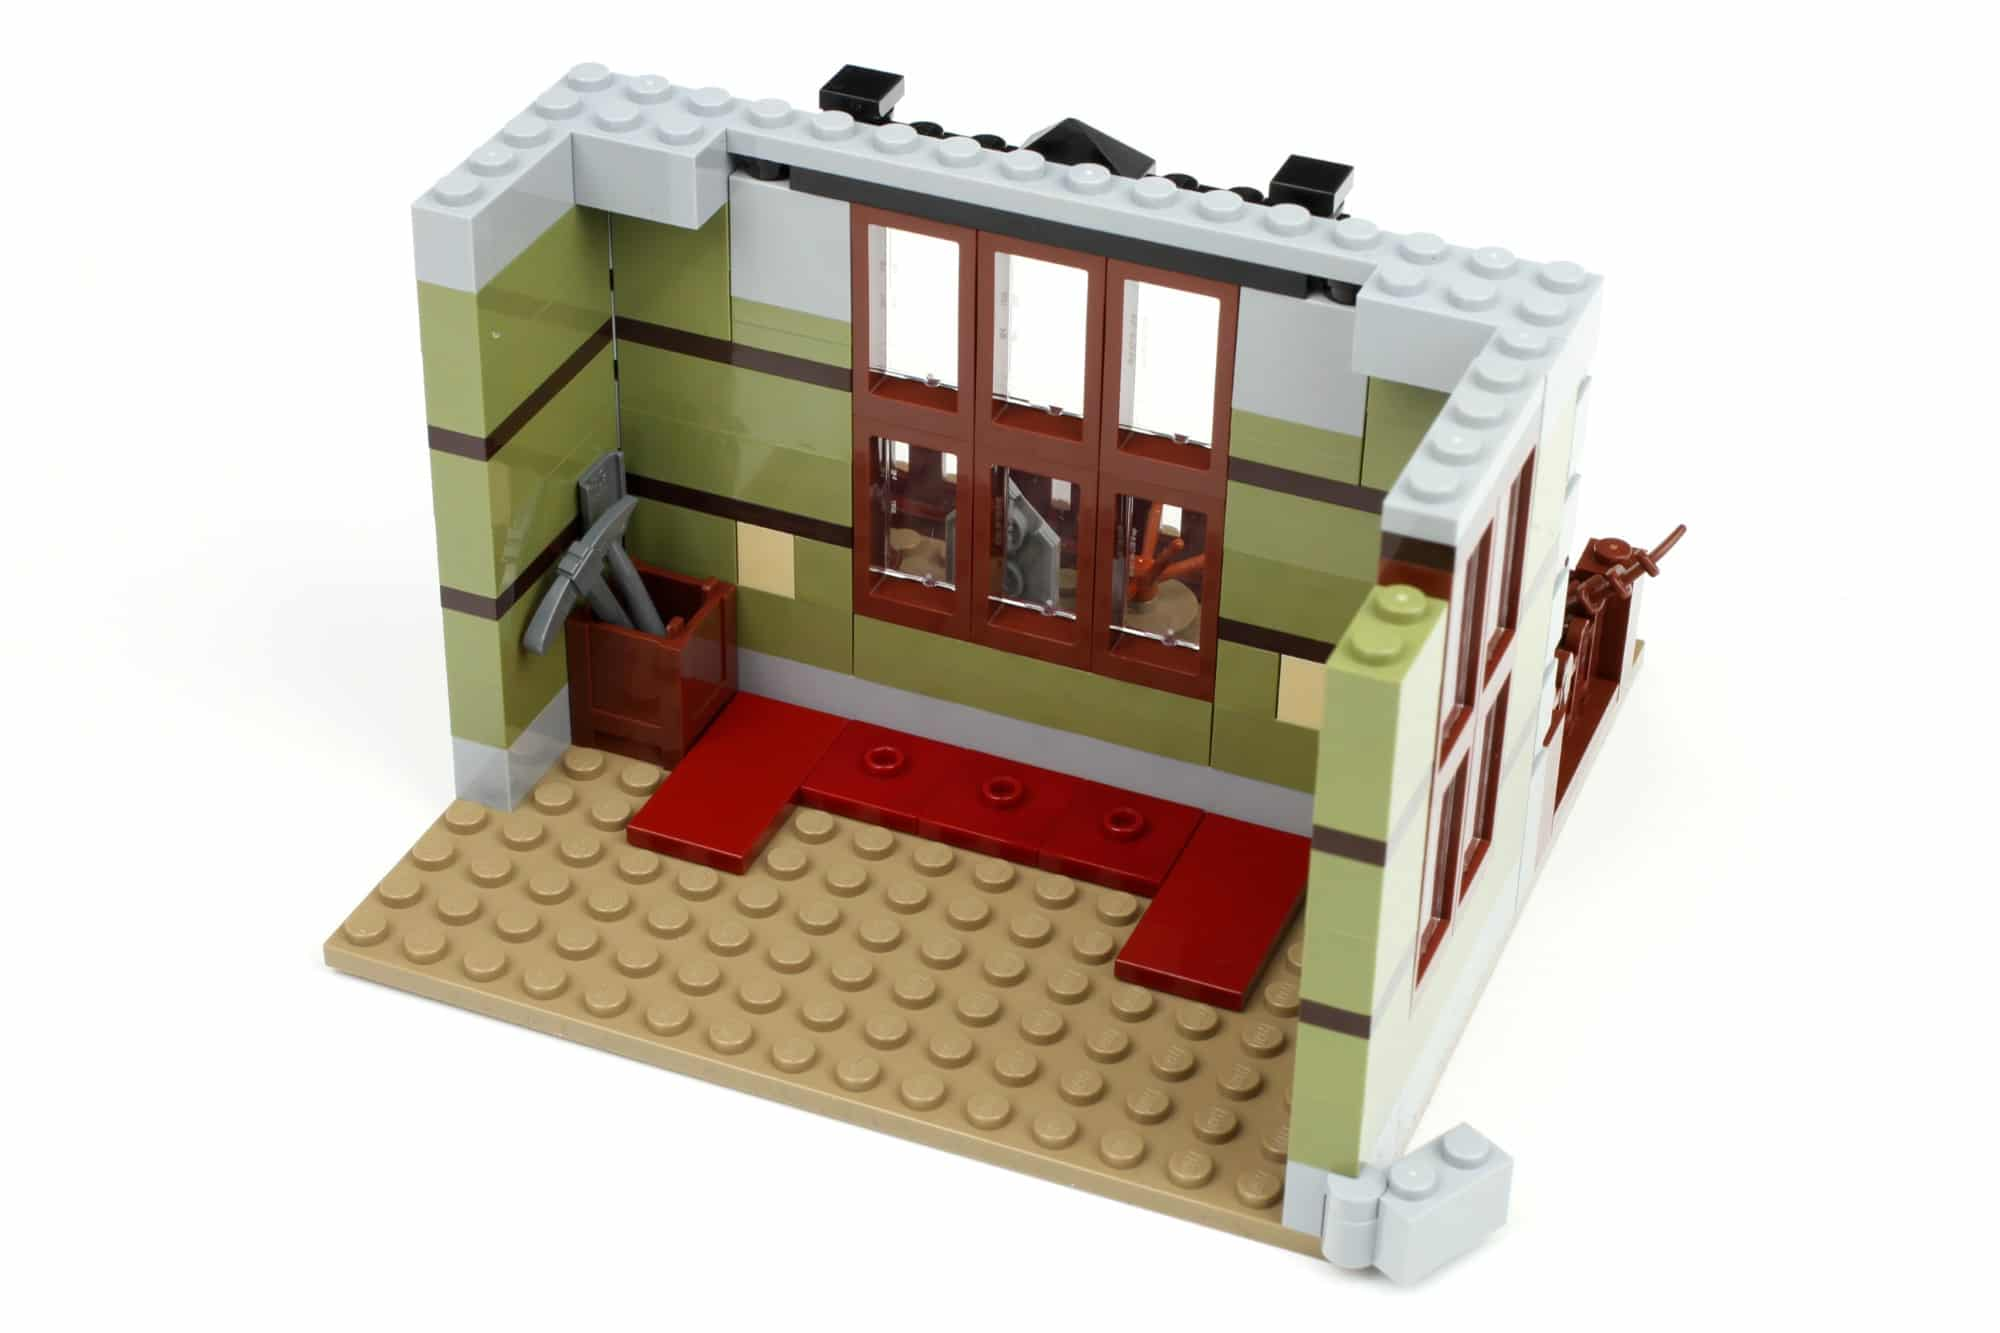 LEGO Fairground Collection 10273 Haunted House Aufbau Schritt 1 2